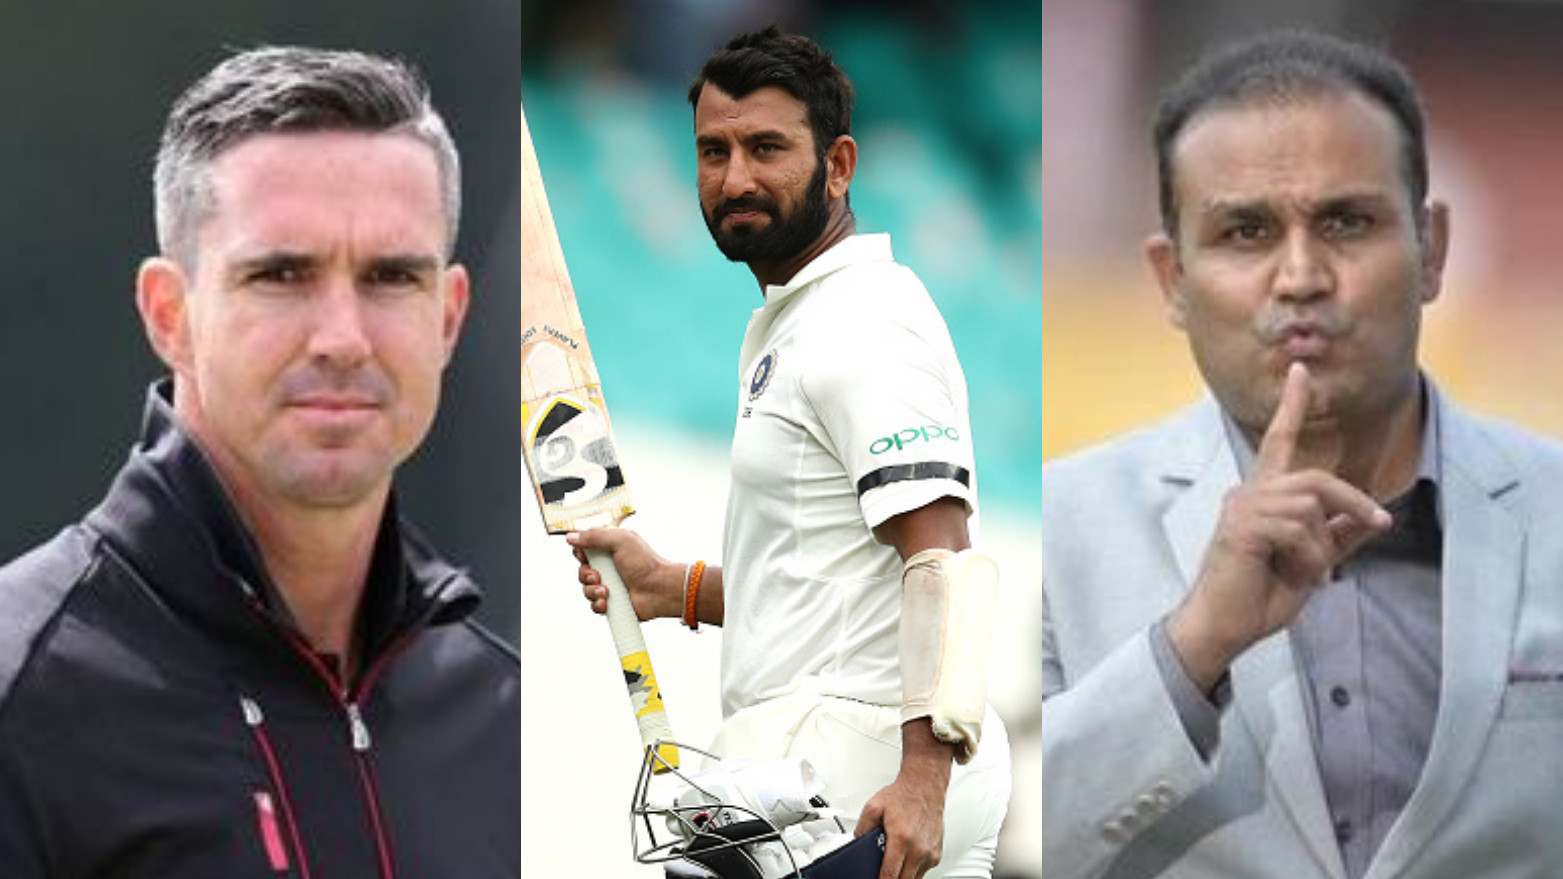 AUS v IND 2018-19: Cricket fraternity applauds Cheteshwar Pujara for his 18th Test century